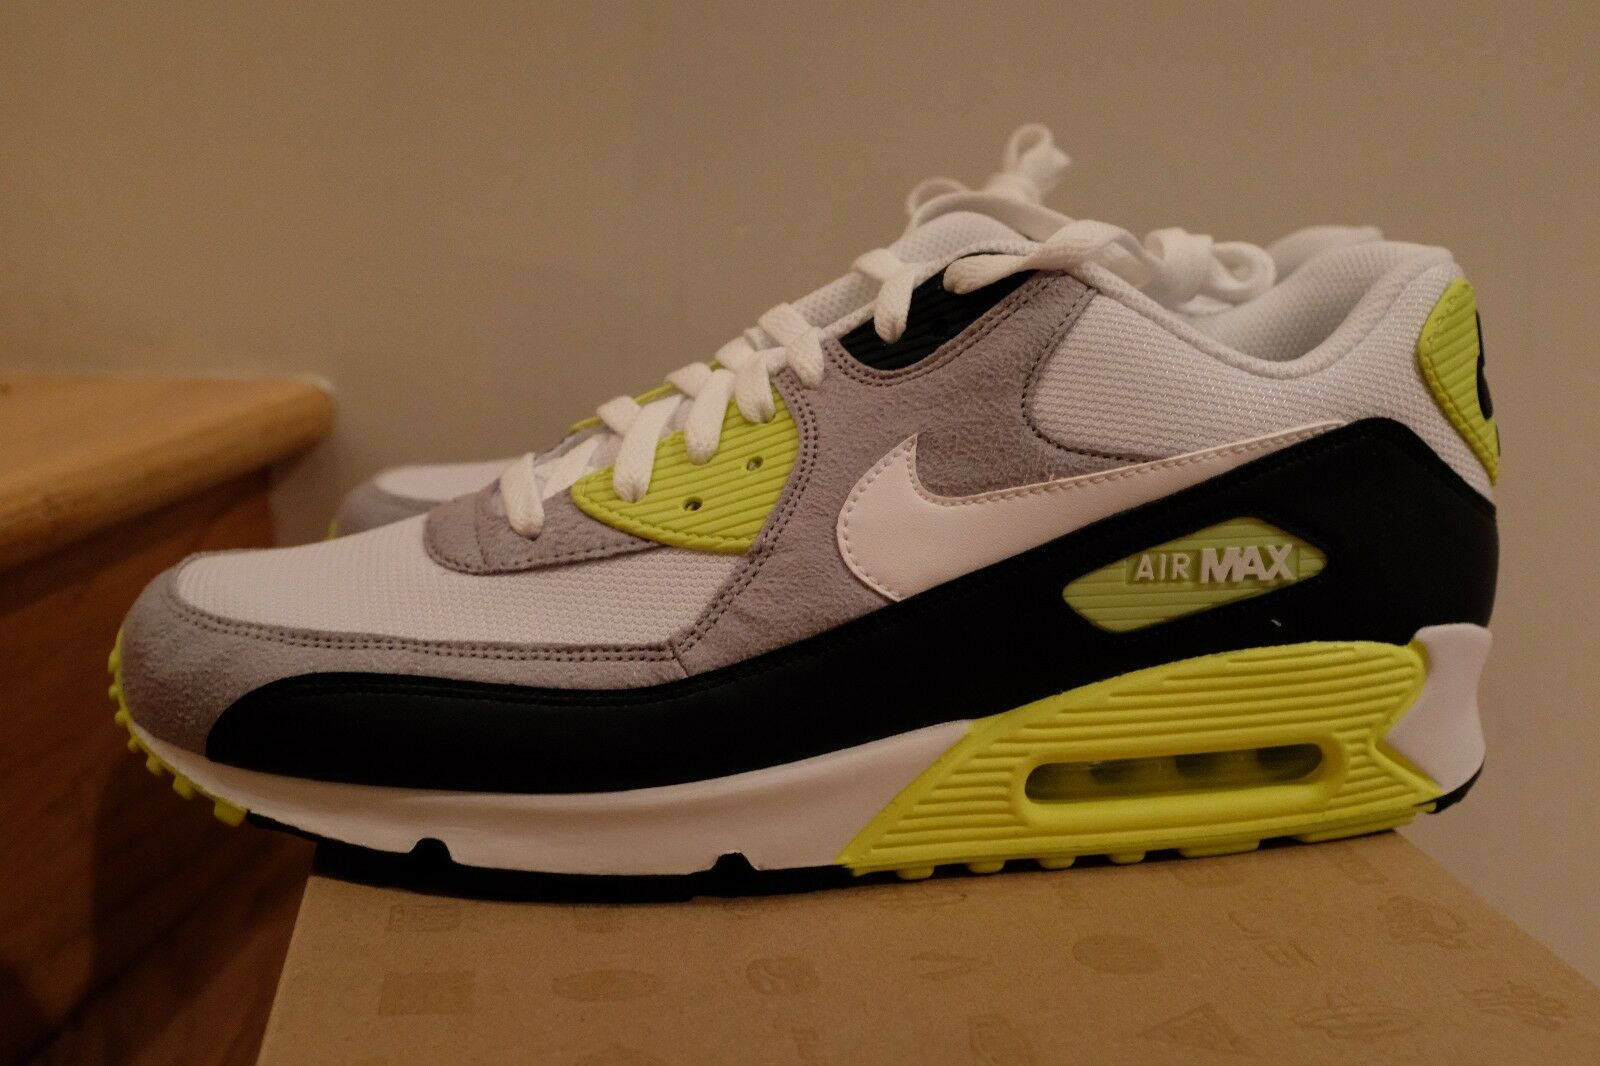 2011 Nike Air Max 90 Volt White Black Grey size 13